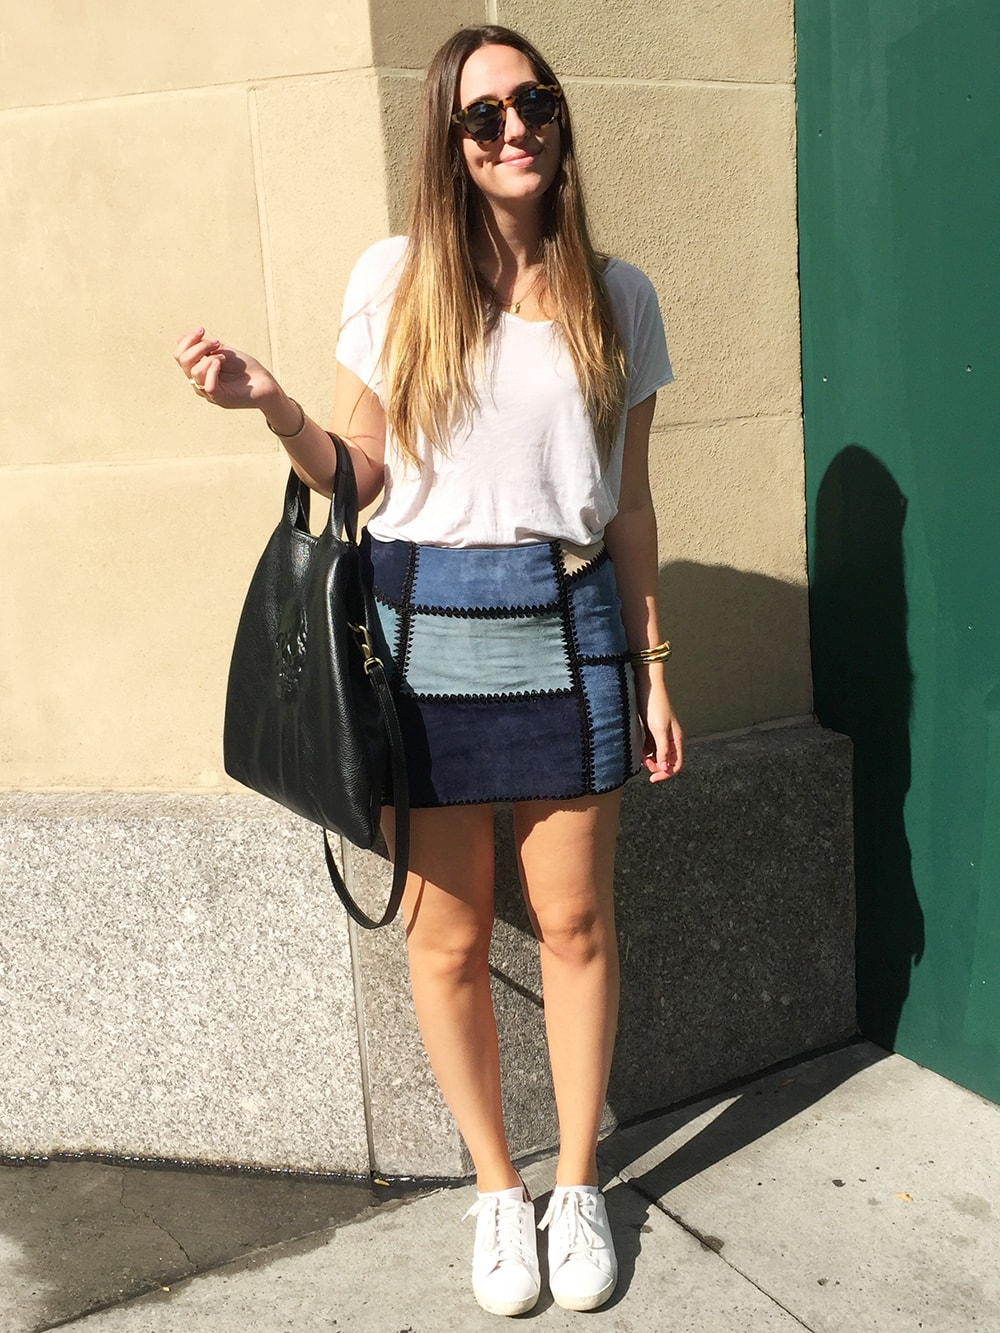 Street style at the University of Michigan - student wearing a patchwork denim skirt, glitter sneakers, and a skull bag